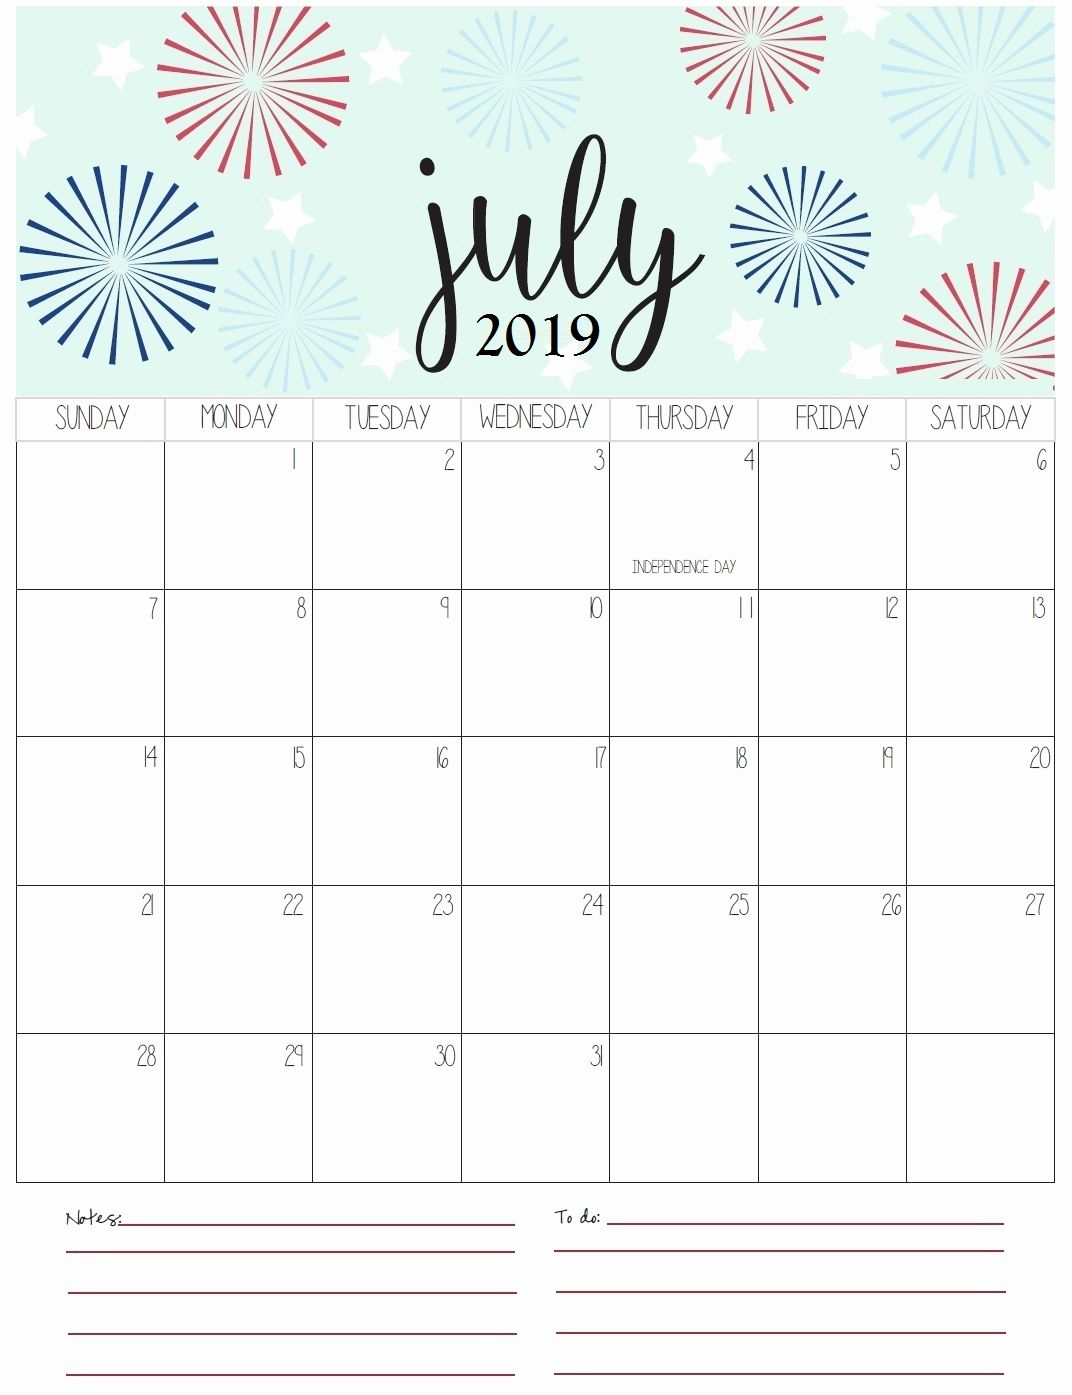 Get July Holidays 2019 Calendar Printable For Usa Uk Canada 7